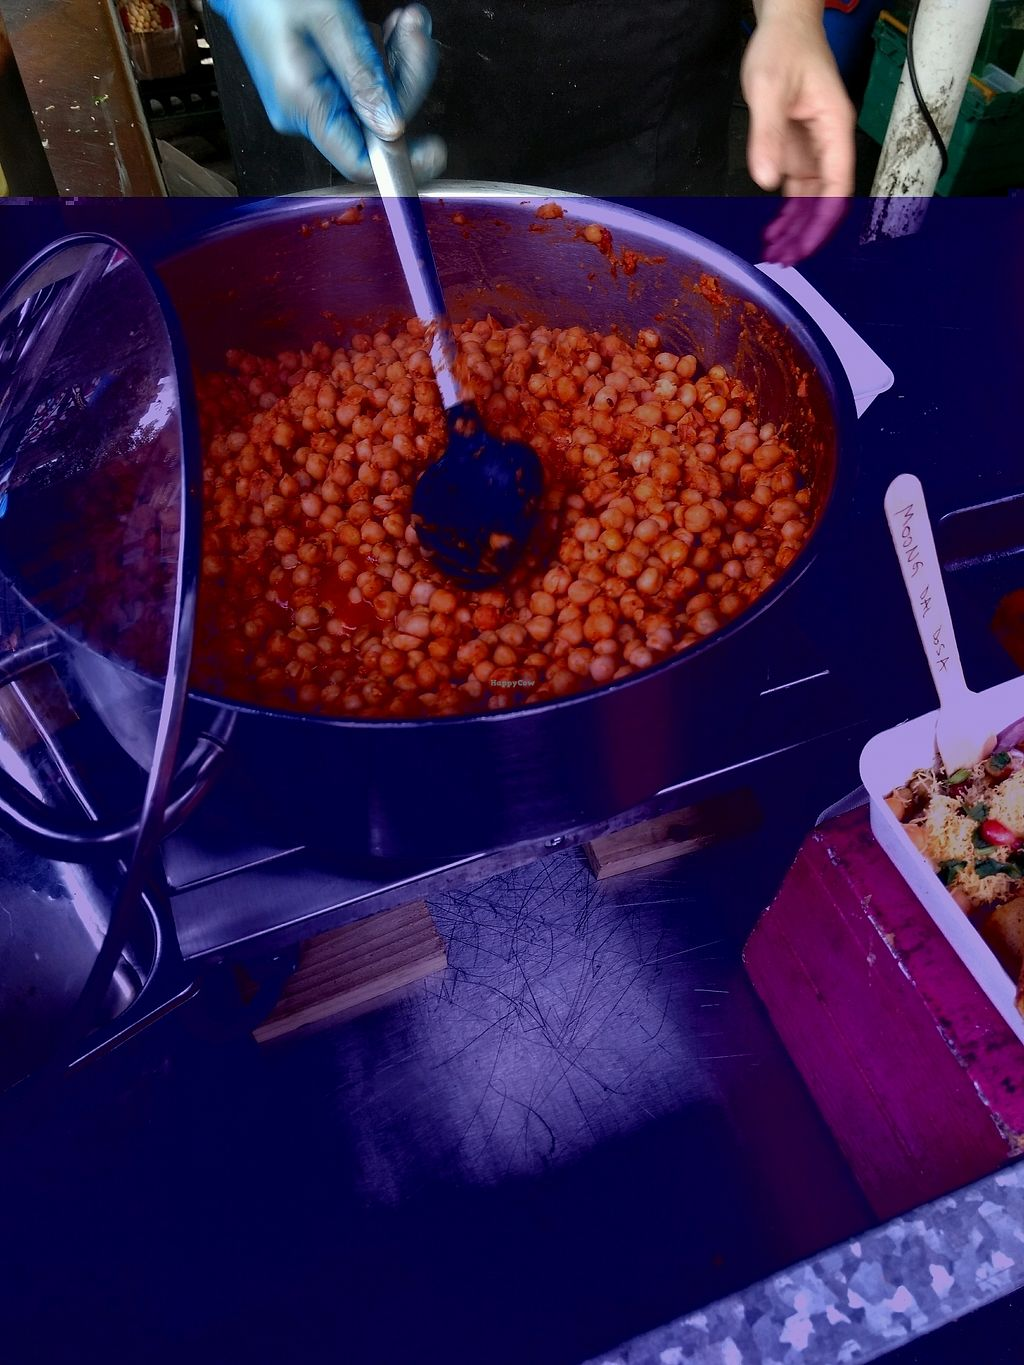 """Photo of Horn Ok Please - Food Stall  by <a href=""""/members/profile/craigmc"""">craigmc</a> <br/>chickpea action <br/> October 17, 2017  - <a href='/contact/abuse/image/59959/316168'>Report</a>"""